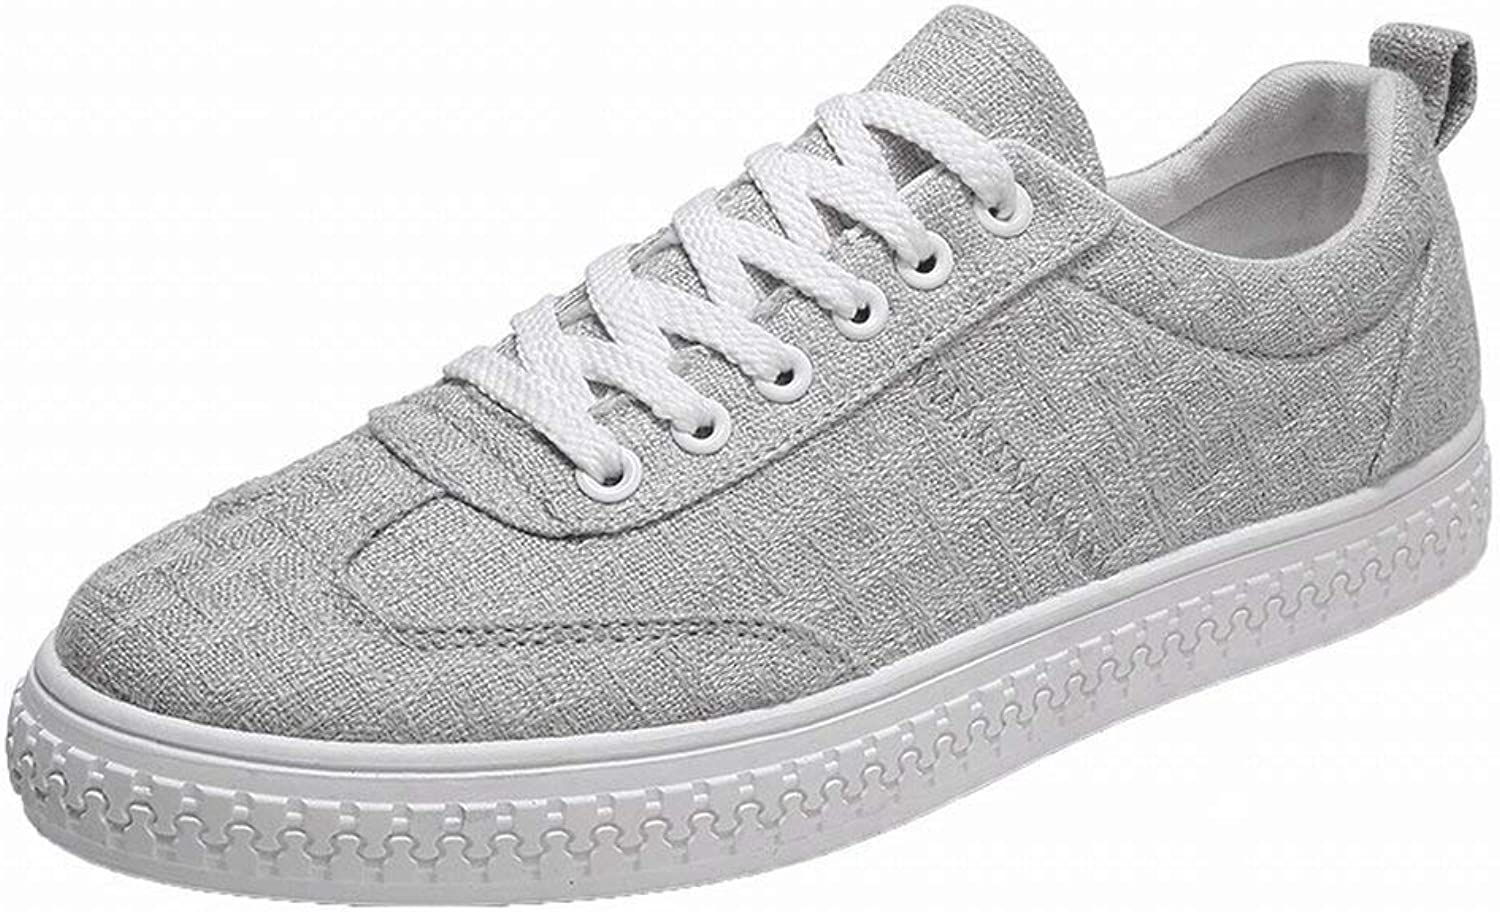 Oudan Fashion Trend Canvas Canvas shoes Comfortable Breathable Casual All-match Men's shoes (color   Light grey, Size   41)